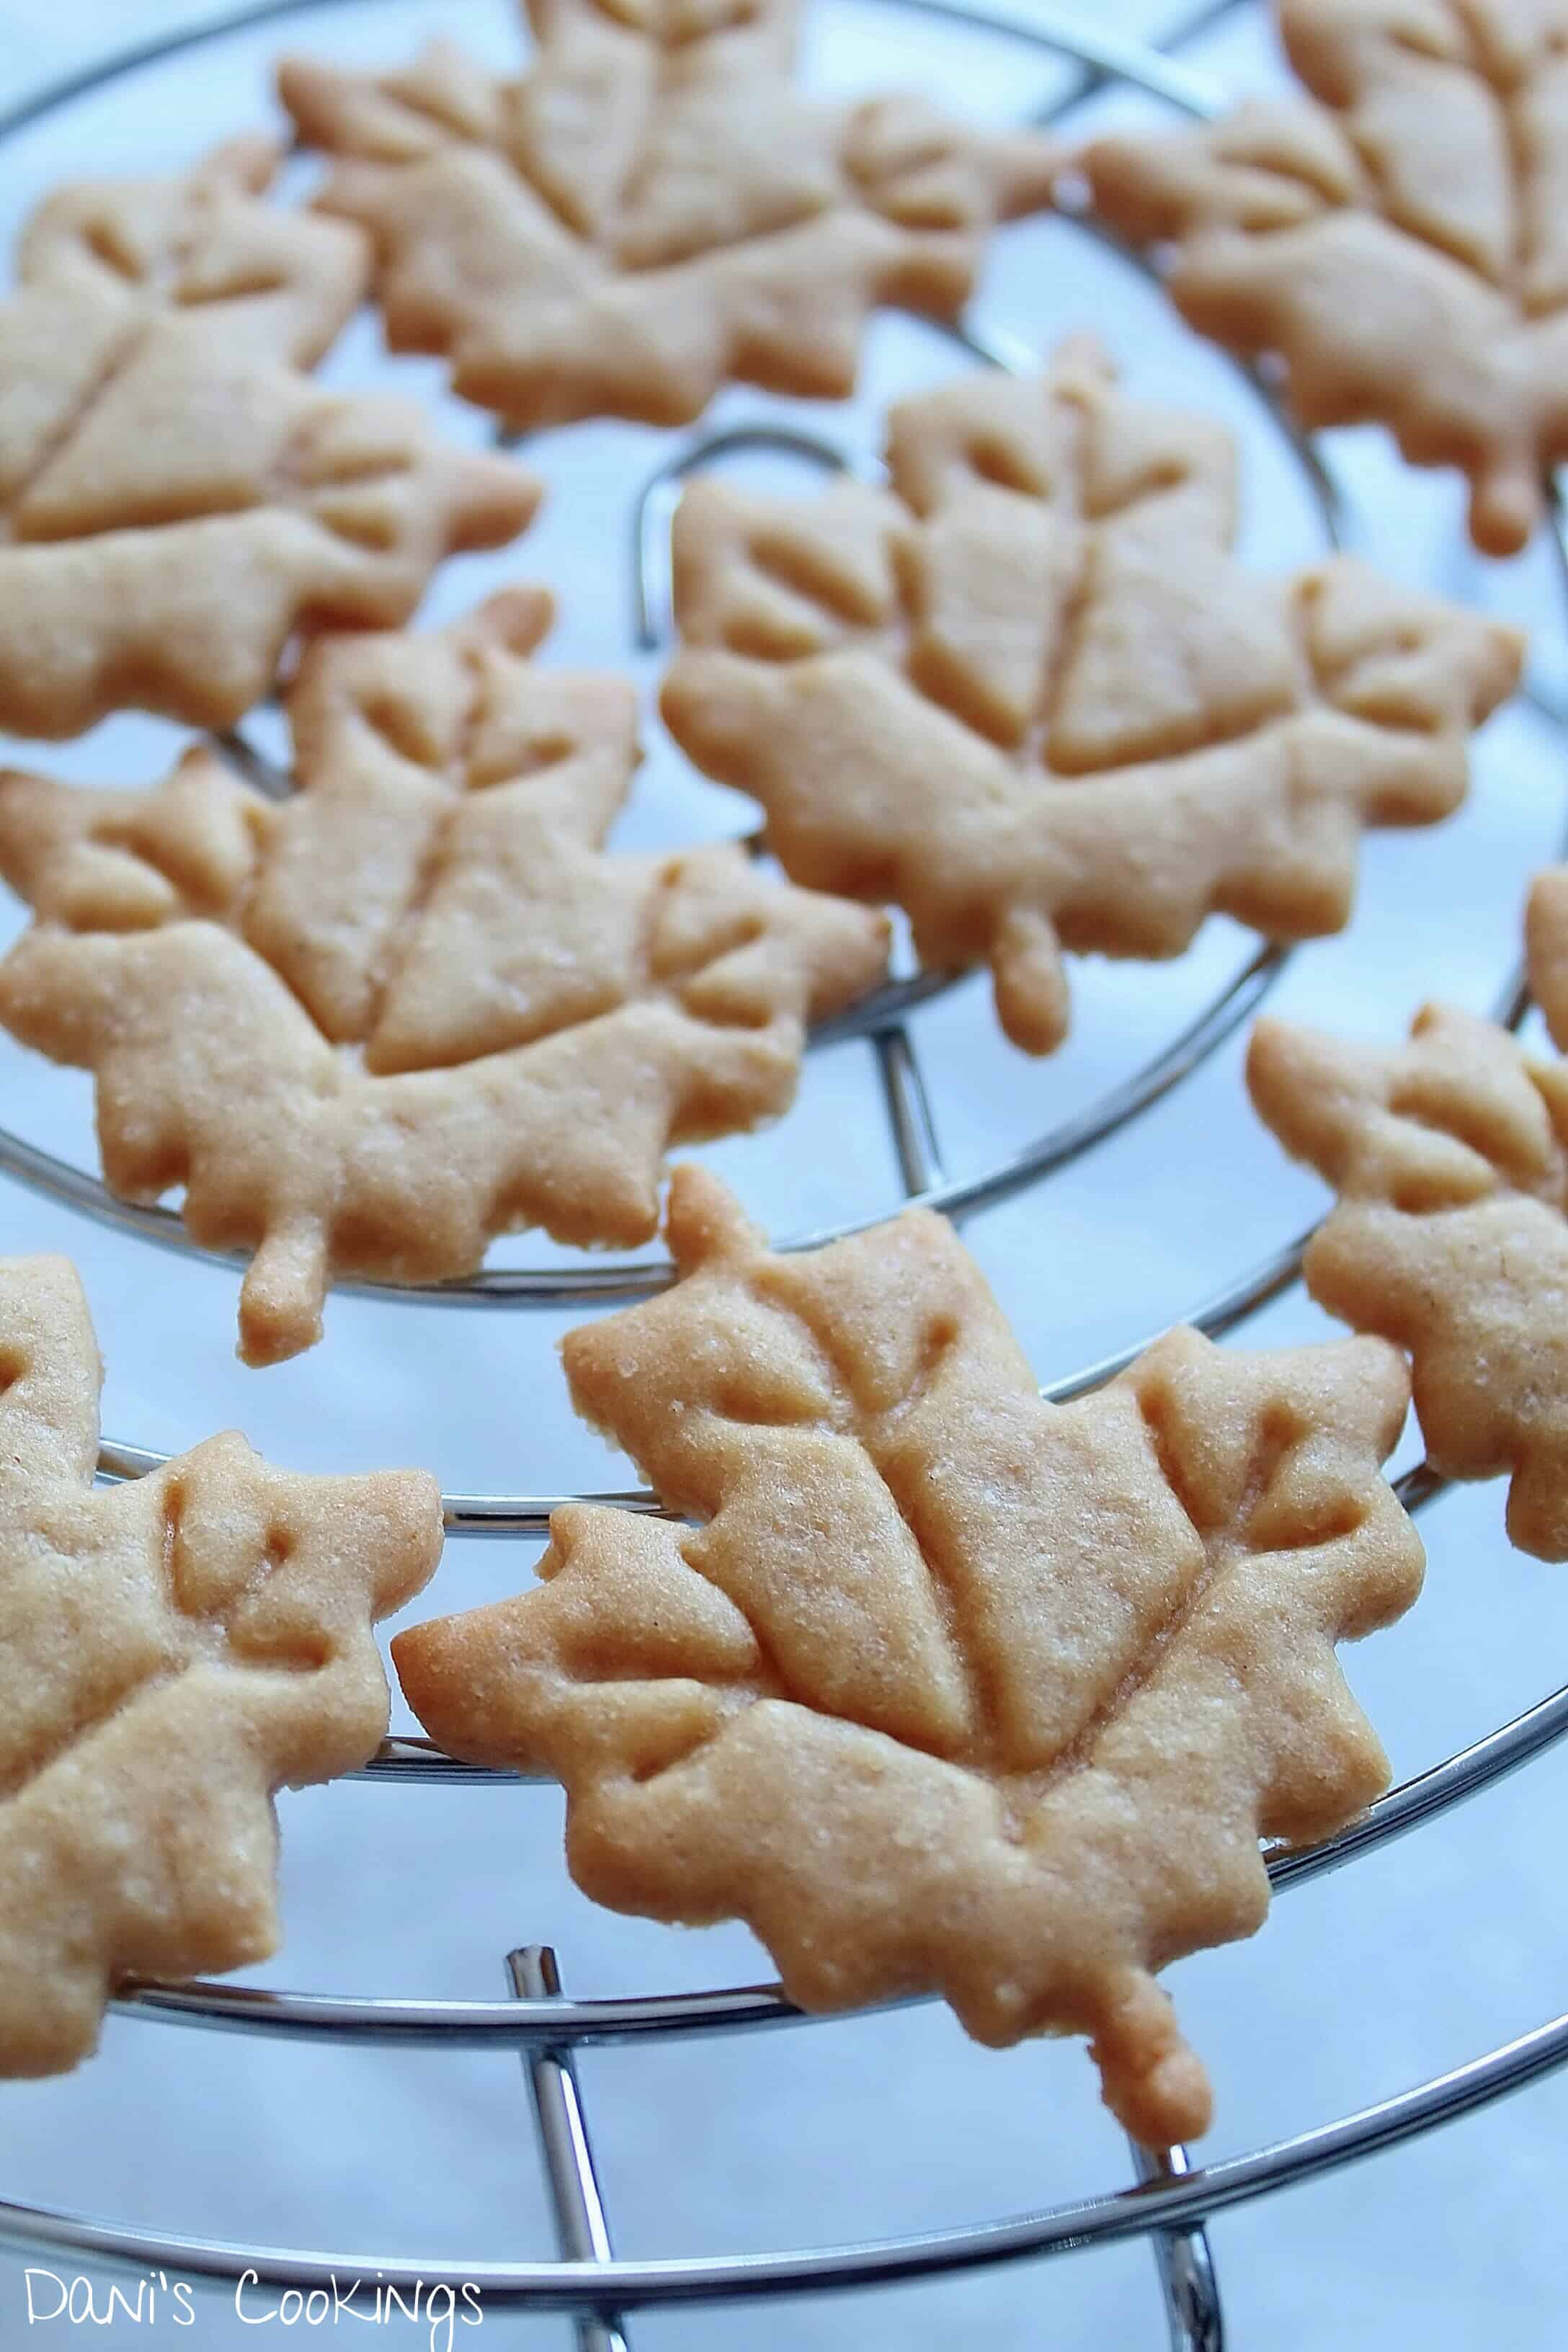 maple shaped cookies on a wire rach